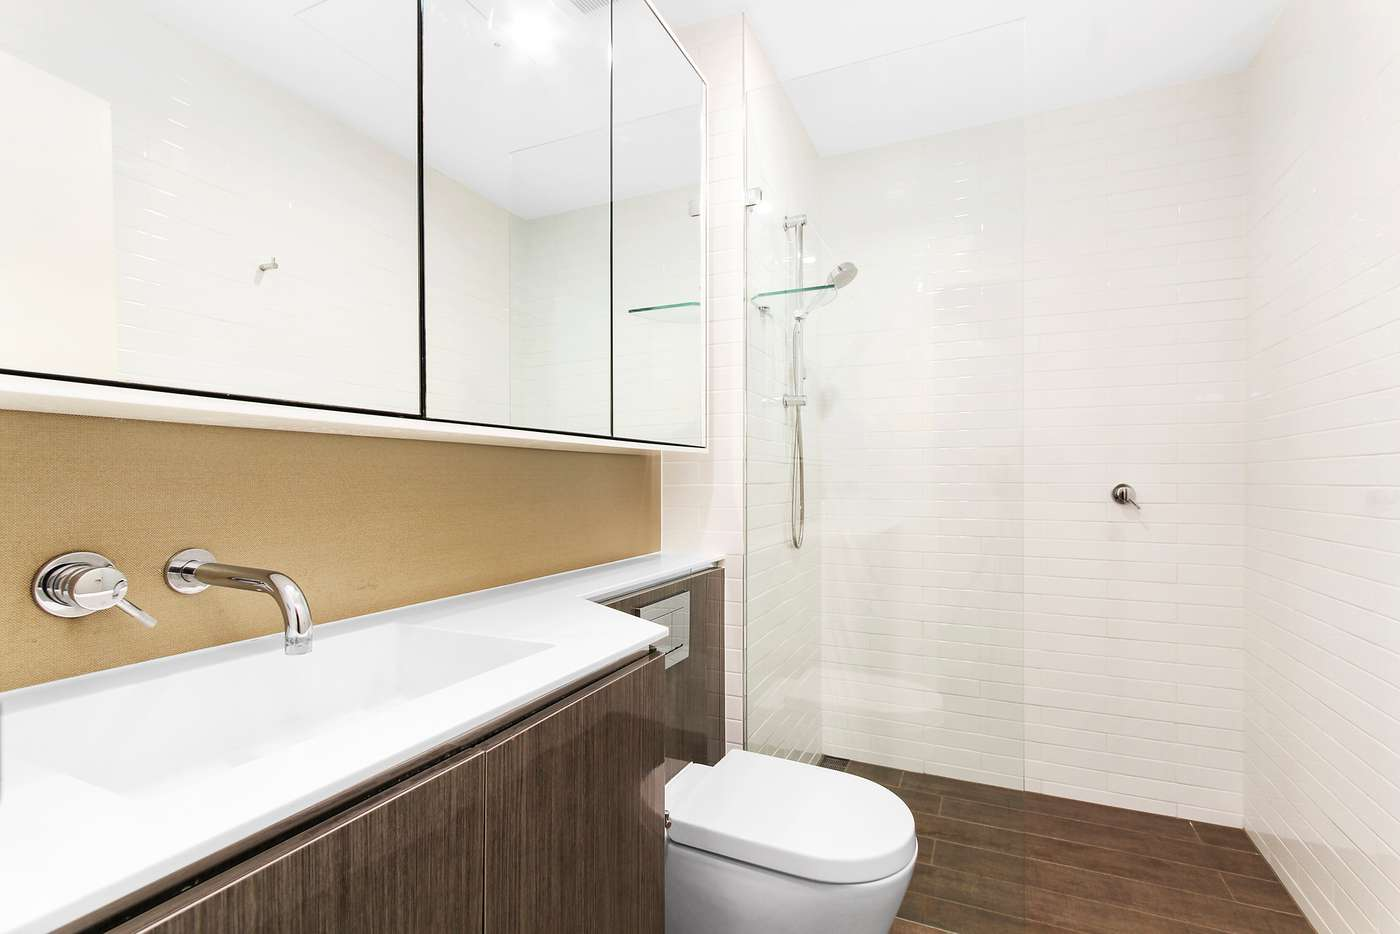 Fifth view of Homely apartment listing, A206/1 Burroway Road, Wentworth Point NSW 2127